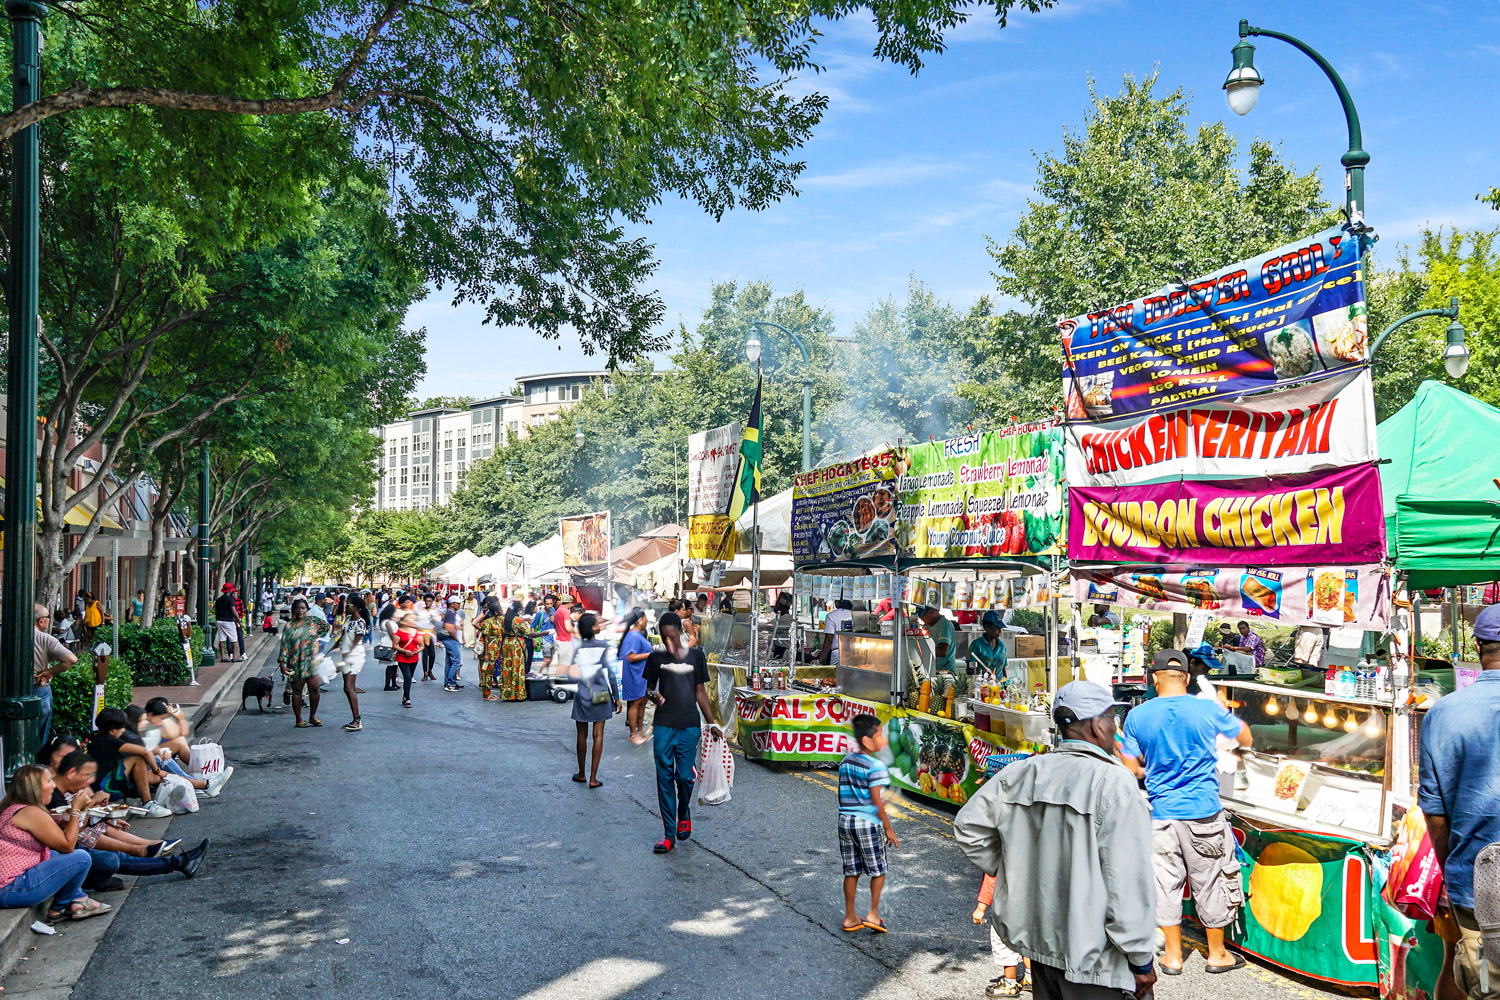 12 minutes to street fairs in Downtown Silver Spring, MD